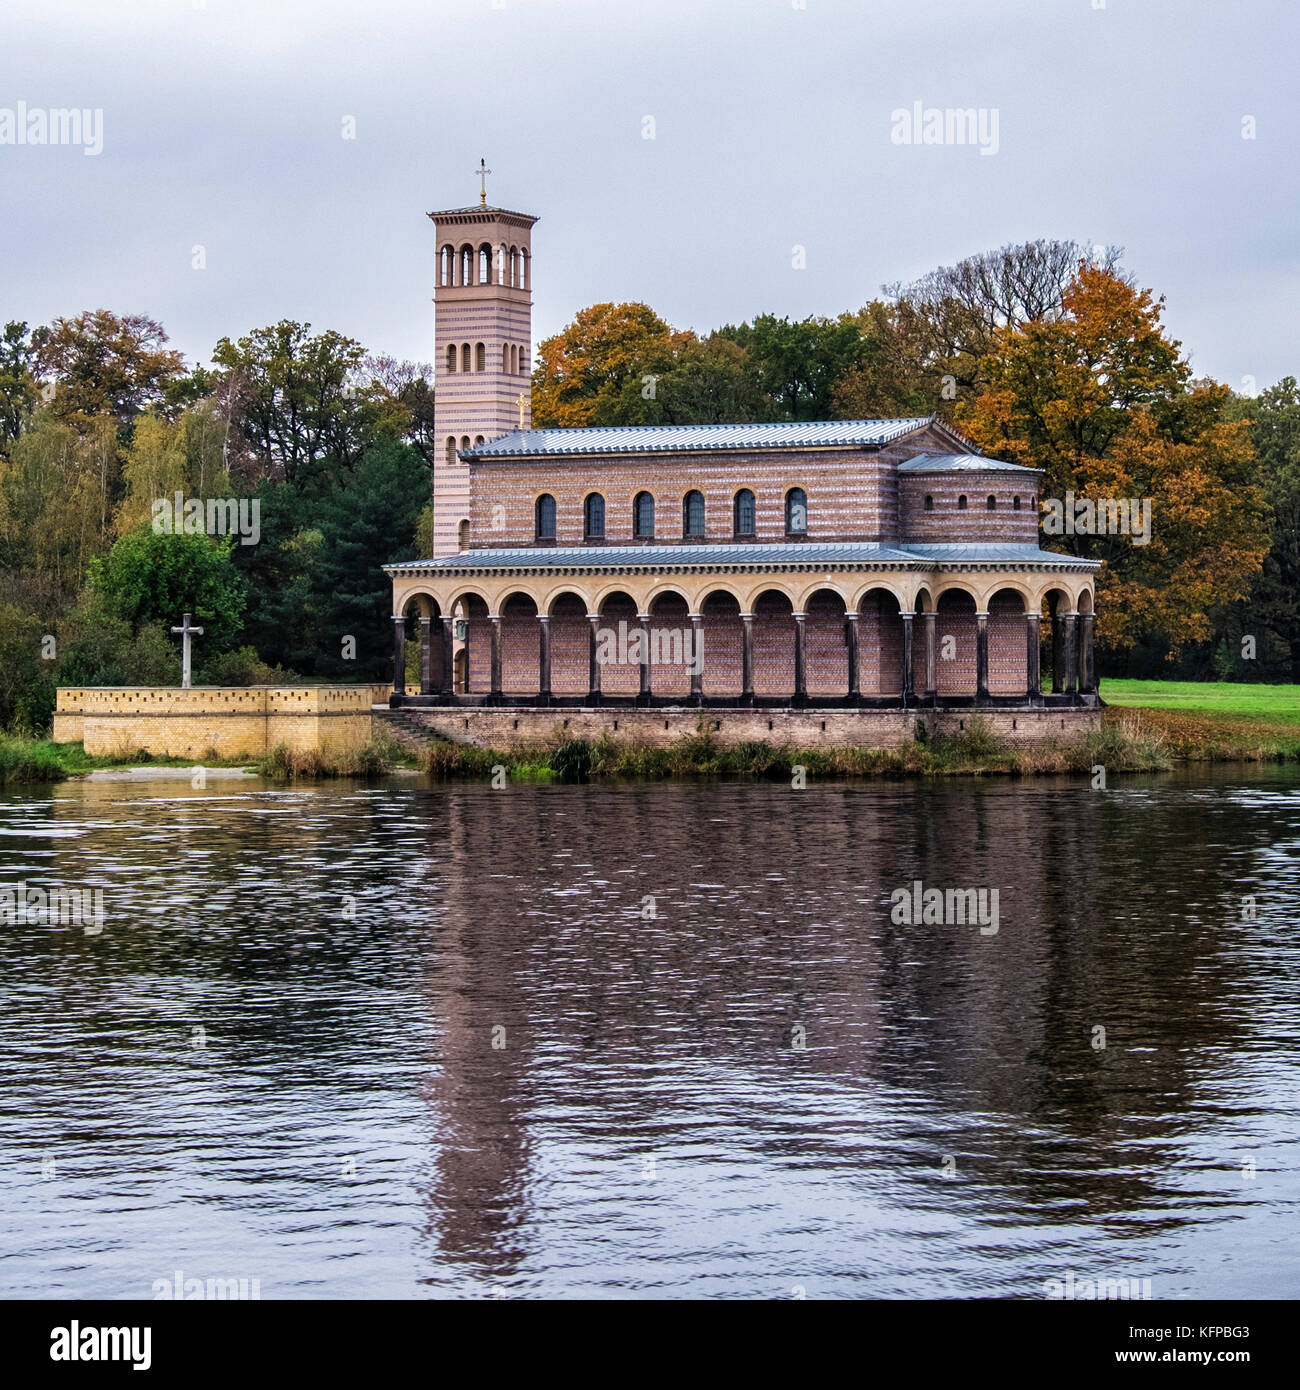 Sacrow,Potsdam.Protestant Church of the Redeemer next to Lake Jungfernsee.Decorative brick building Built 1844 in - Stock Image